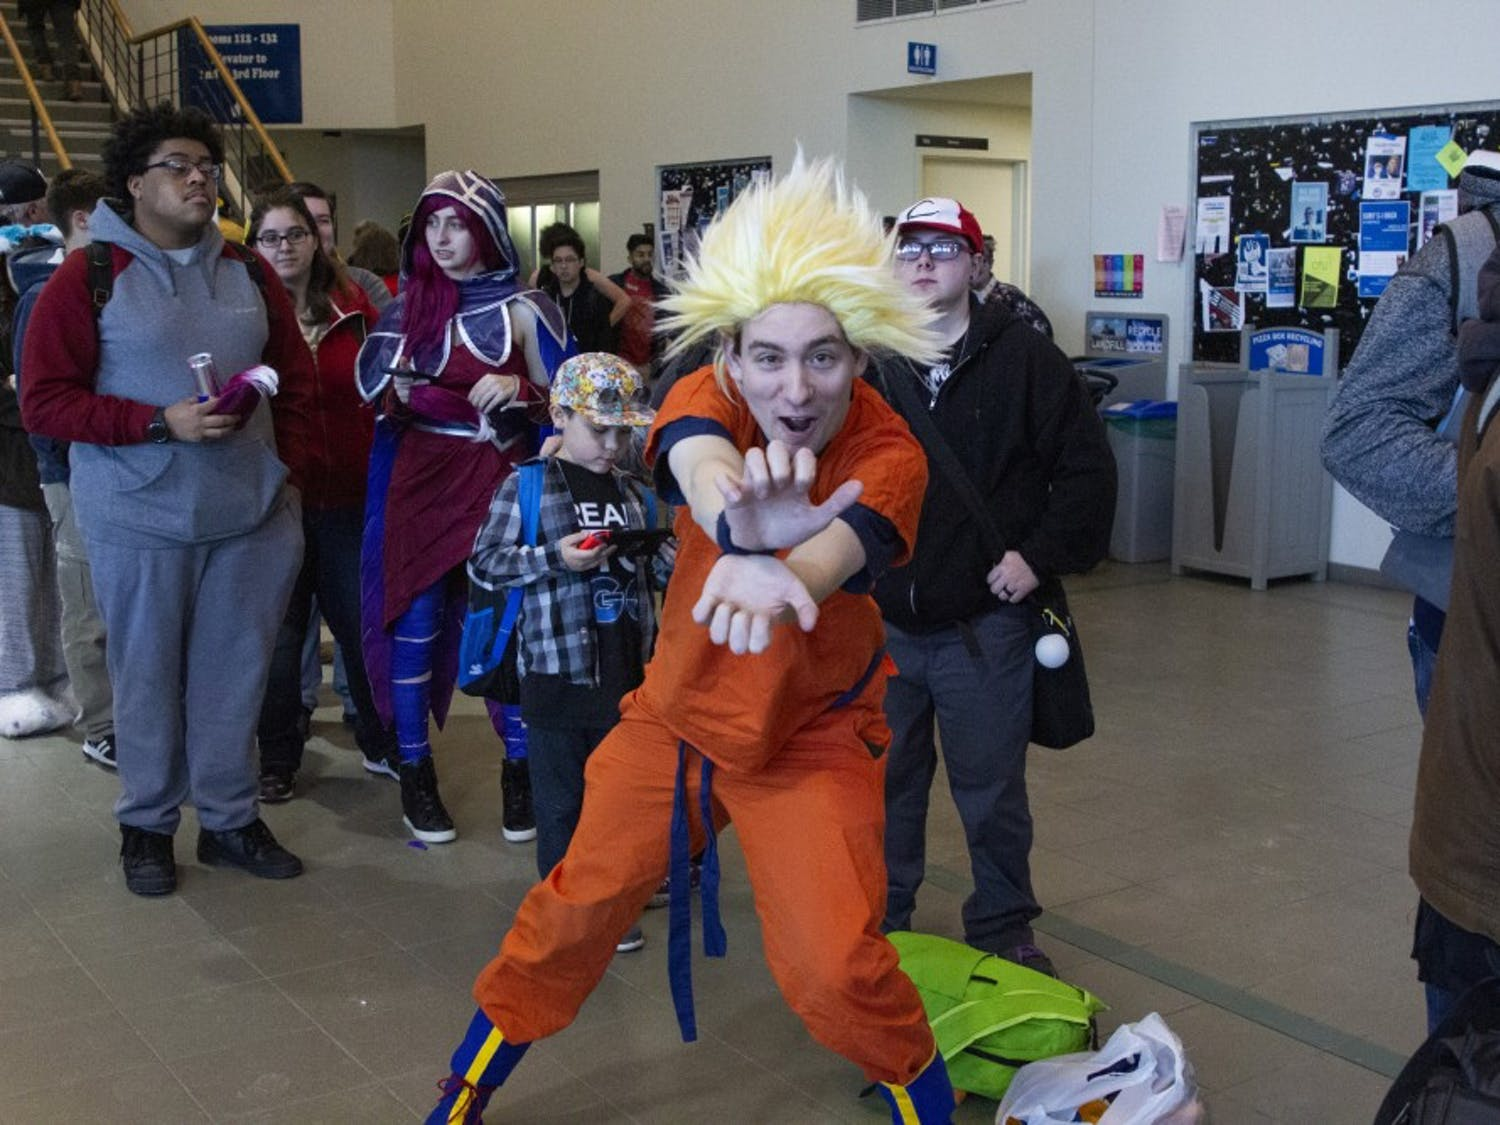 Students filled the Student Union for this year's UBCon beginning on Friday. The fandom community gathered for a weekend of games, artistic showings and the classic NerfWar.